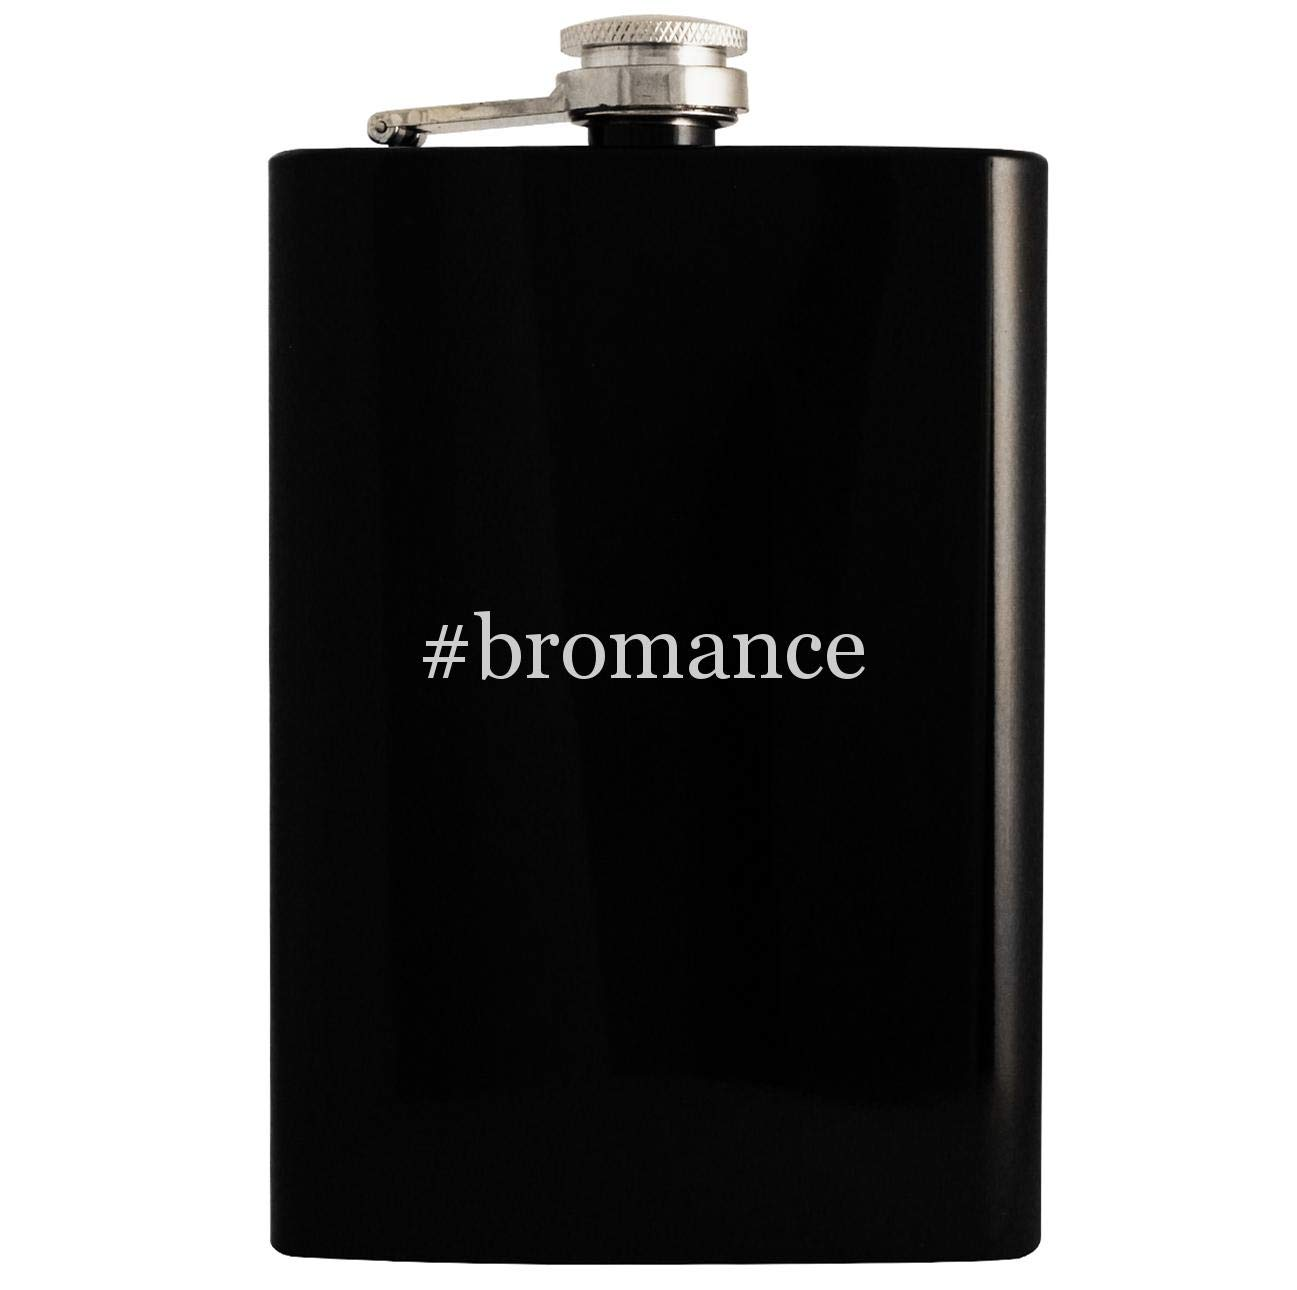 #bromance black hip drinking flask